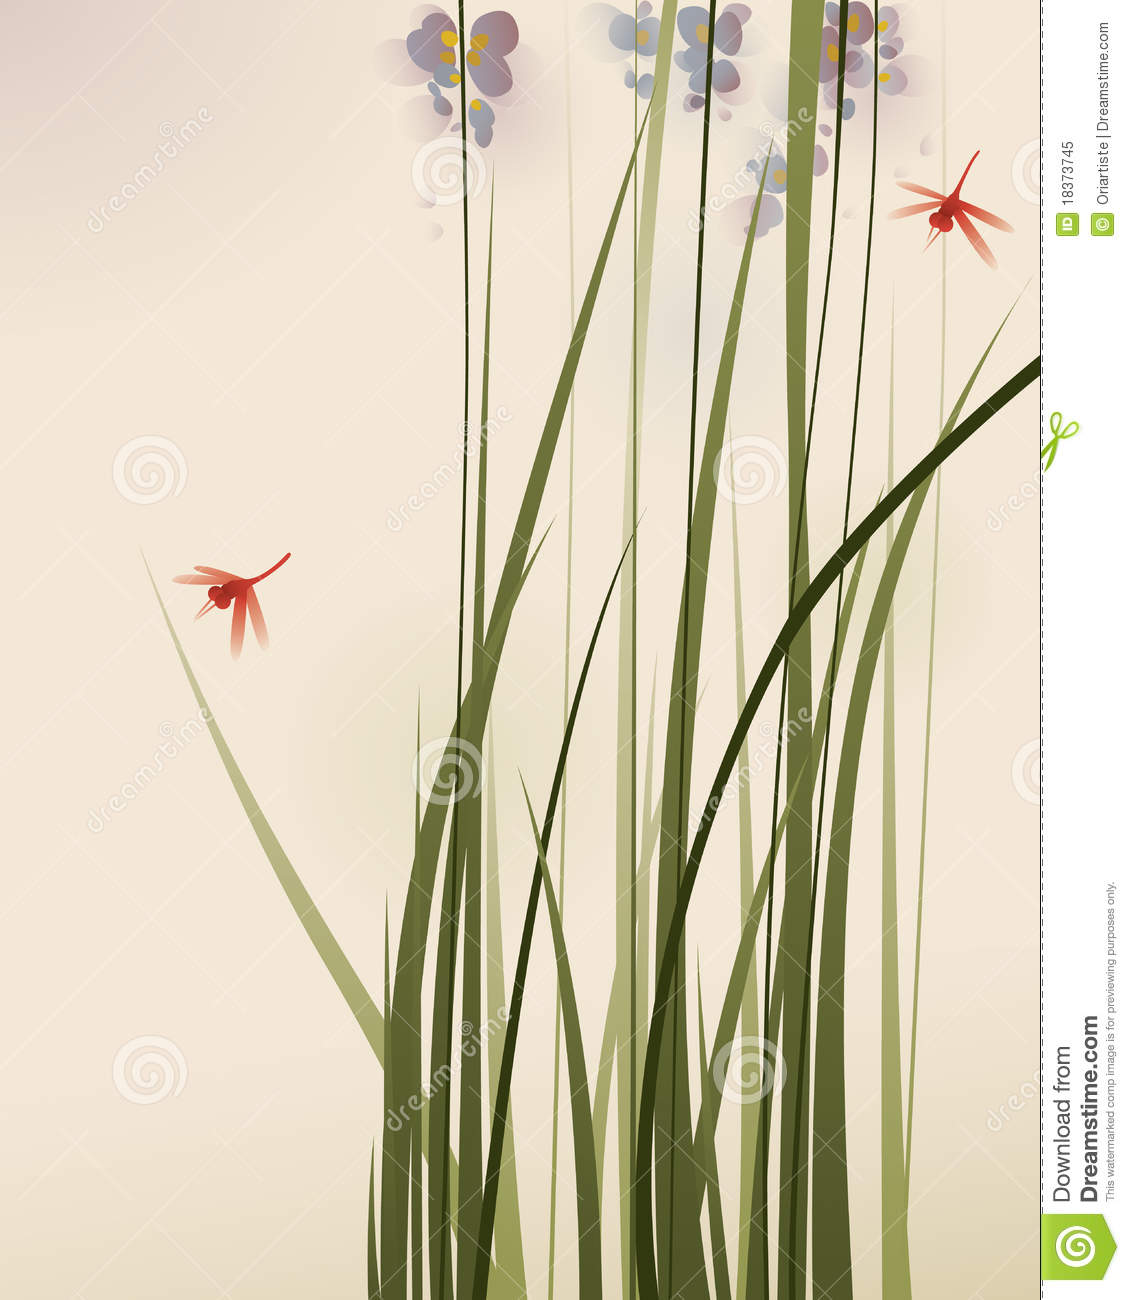 Oriental style painting tall grasses and flowers royalty for Tall oriental grass